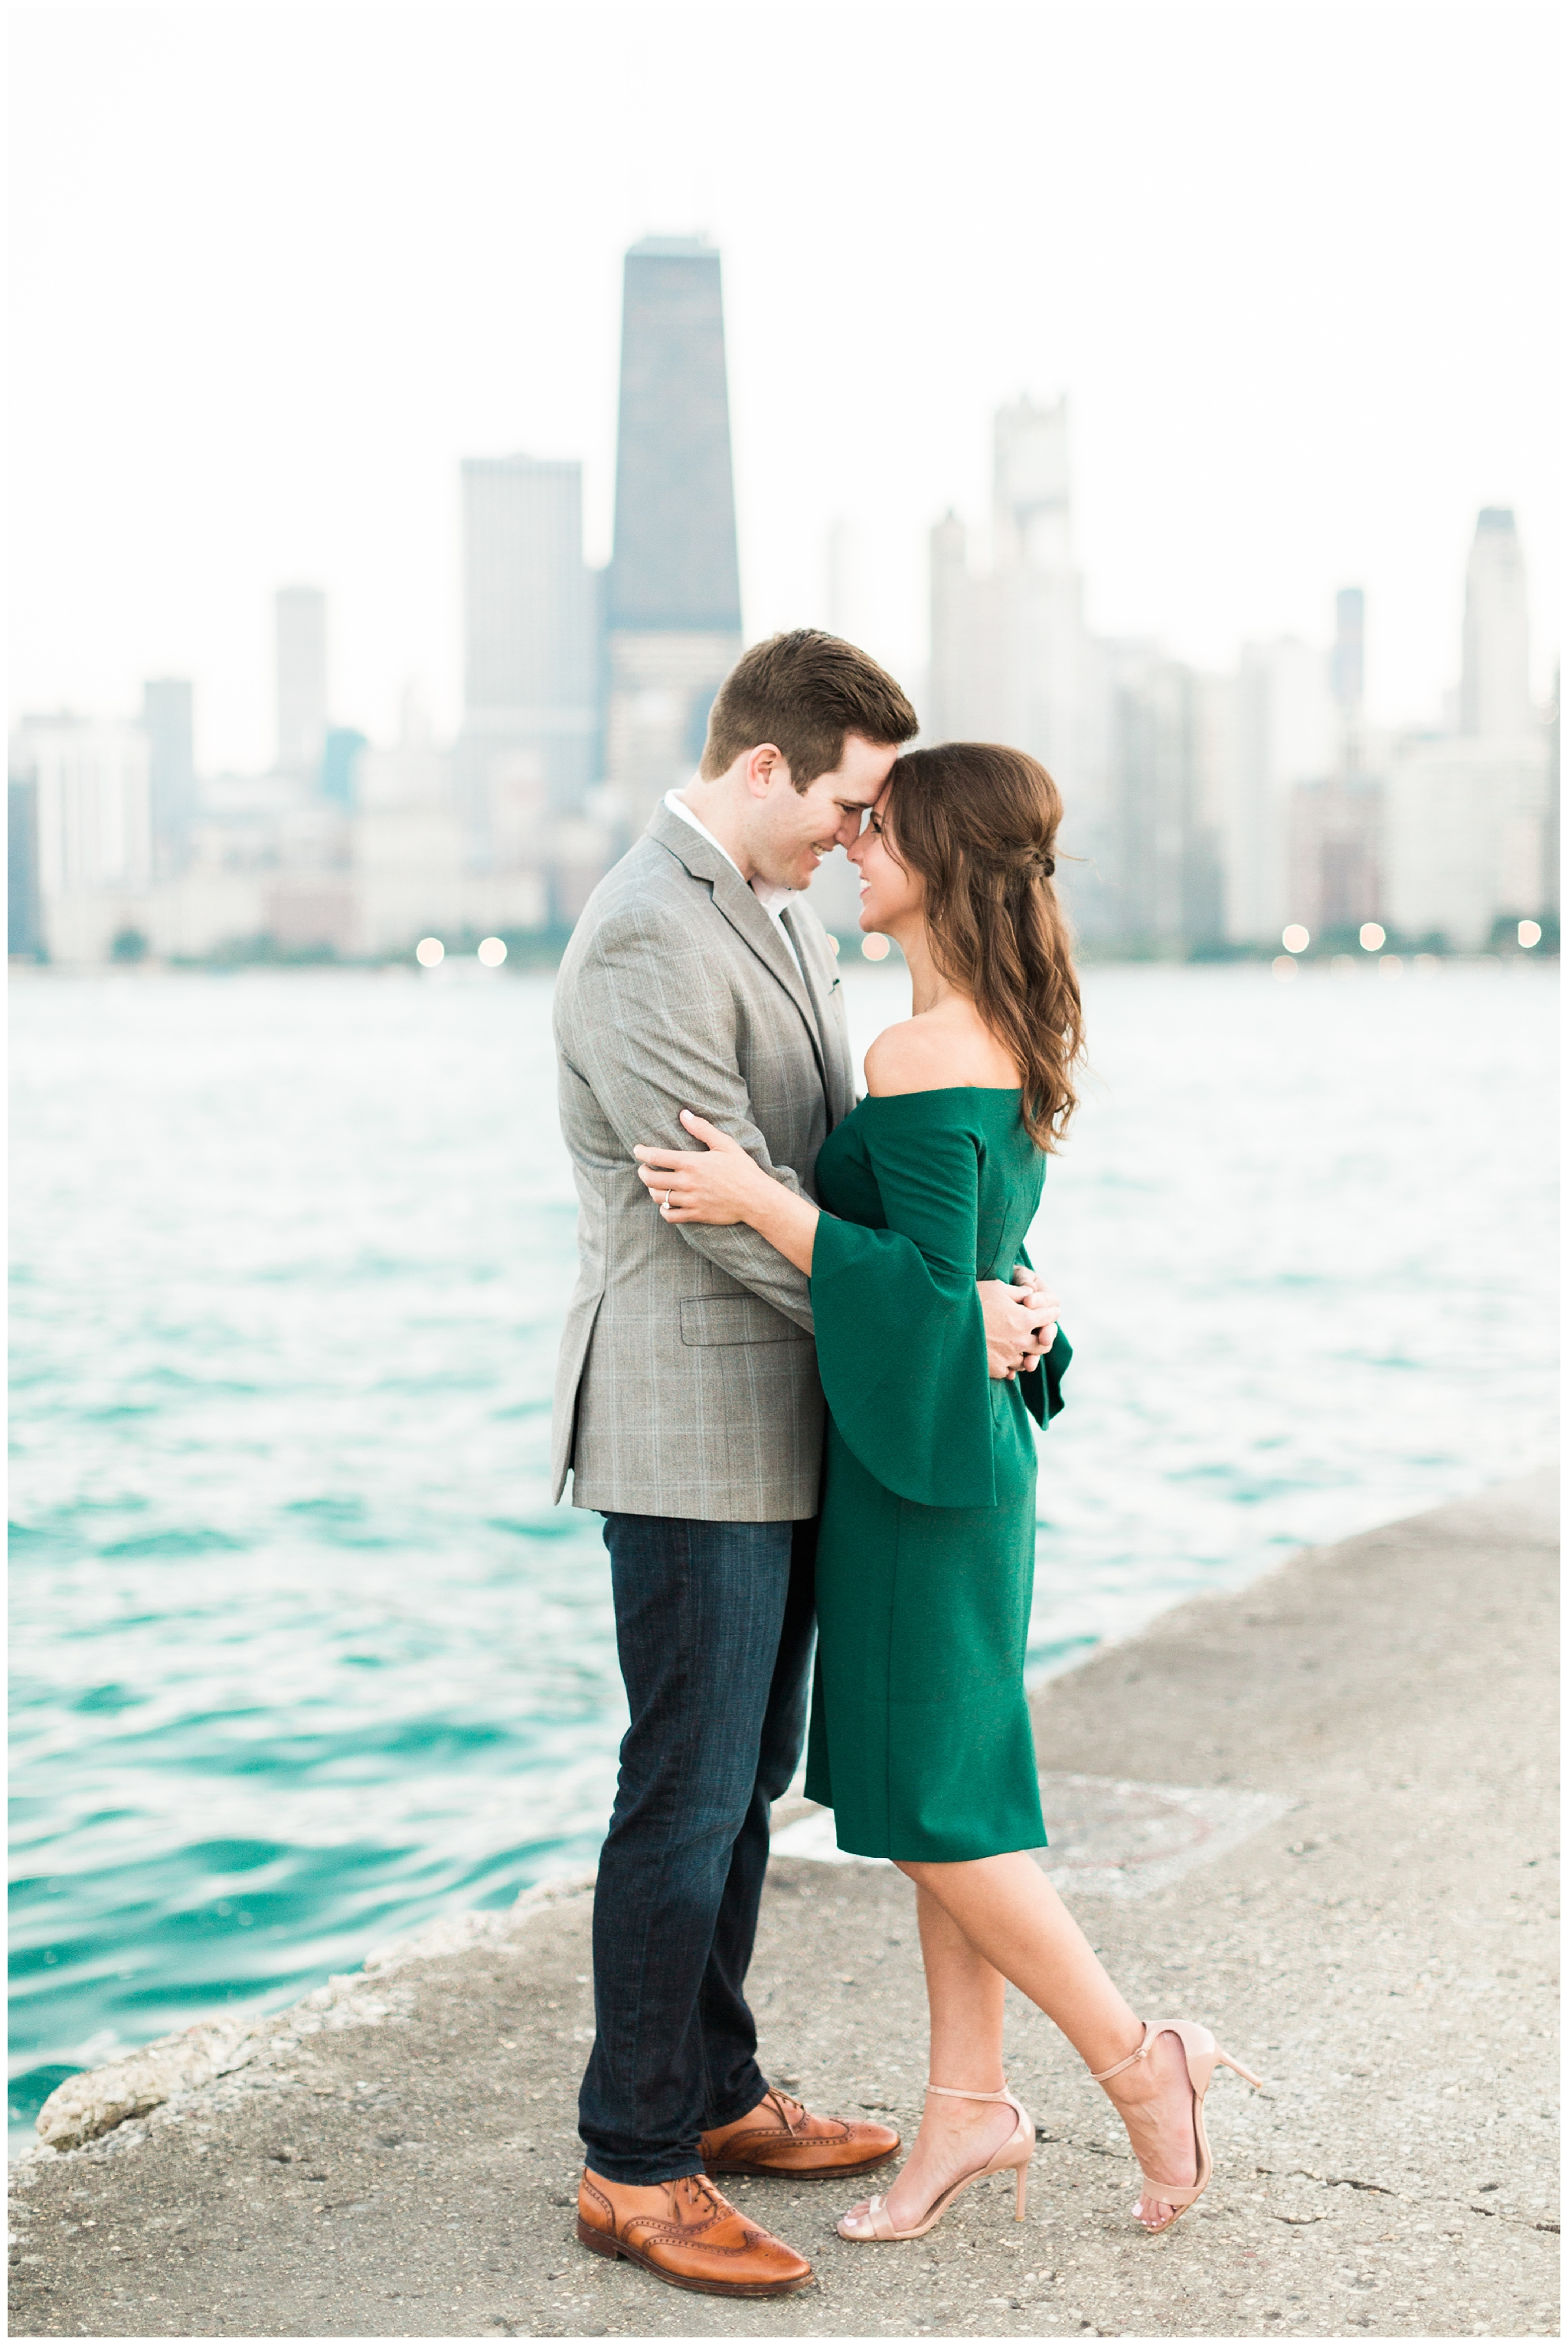 chicagoengagementsession_northavebeachengagementsession_northavebeach_northavenuebeach_northavenuebeachengagementsession_chicagoriverwalk_chicagoriverwalkengagementsession_0017.jpg